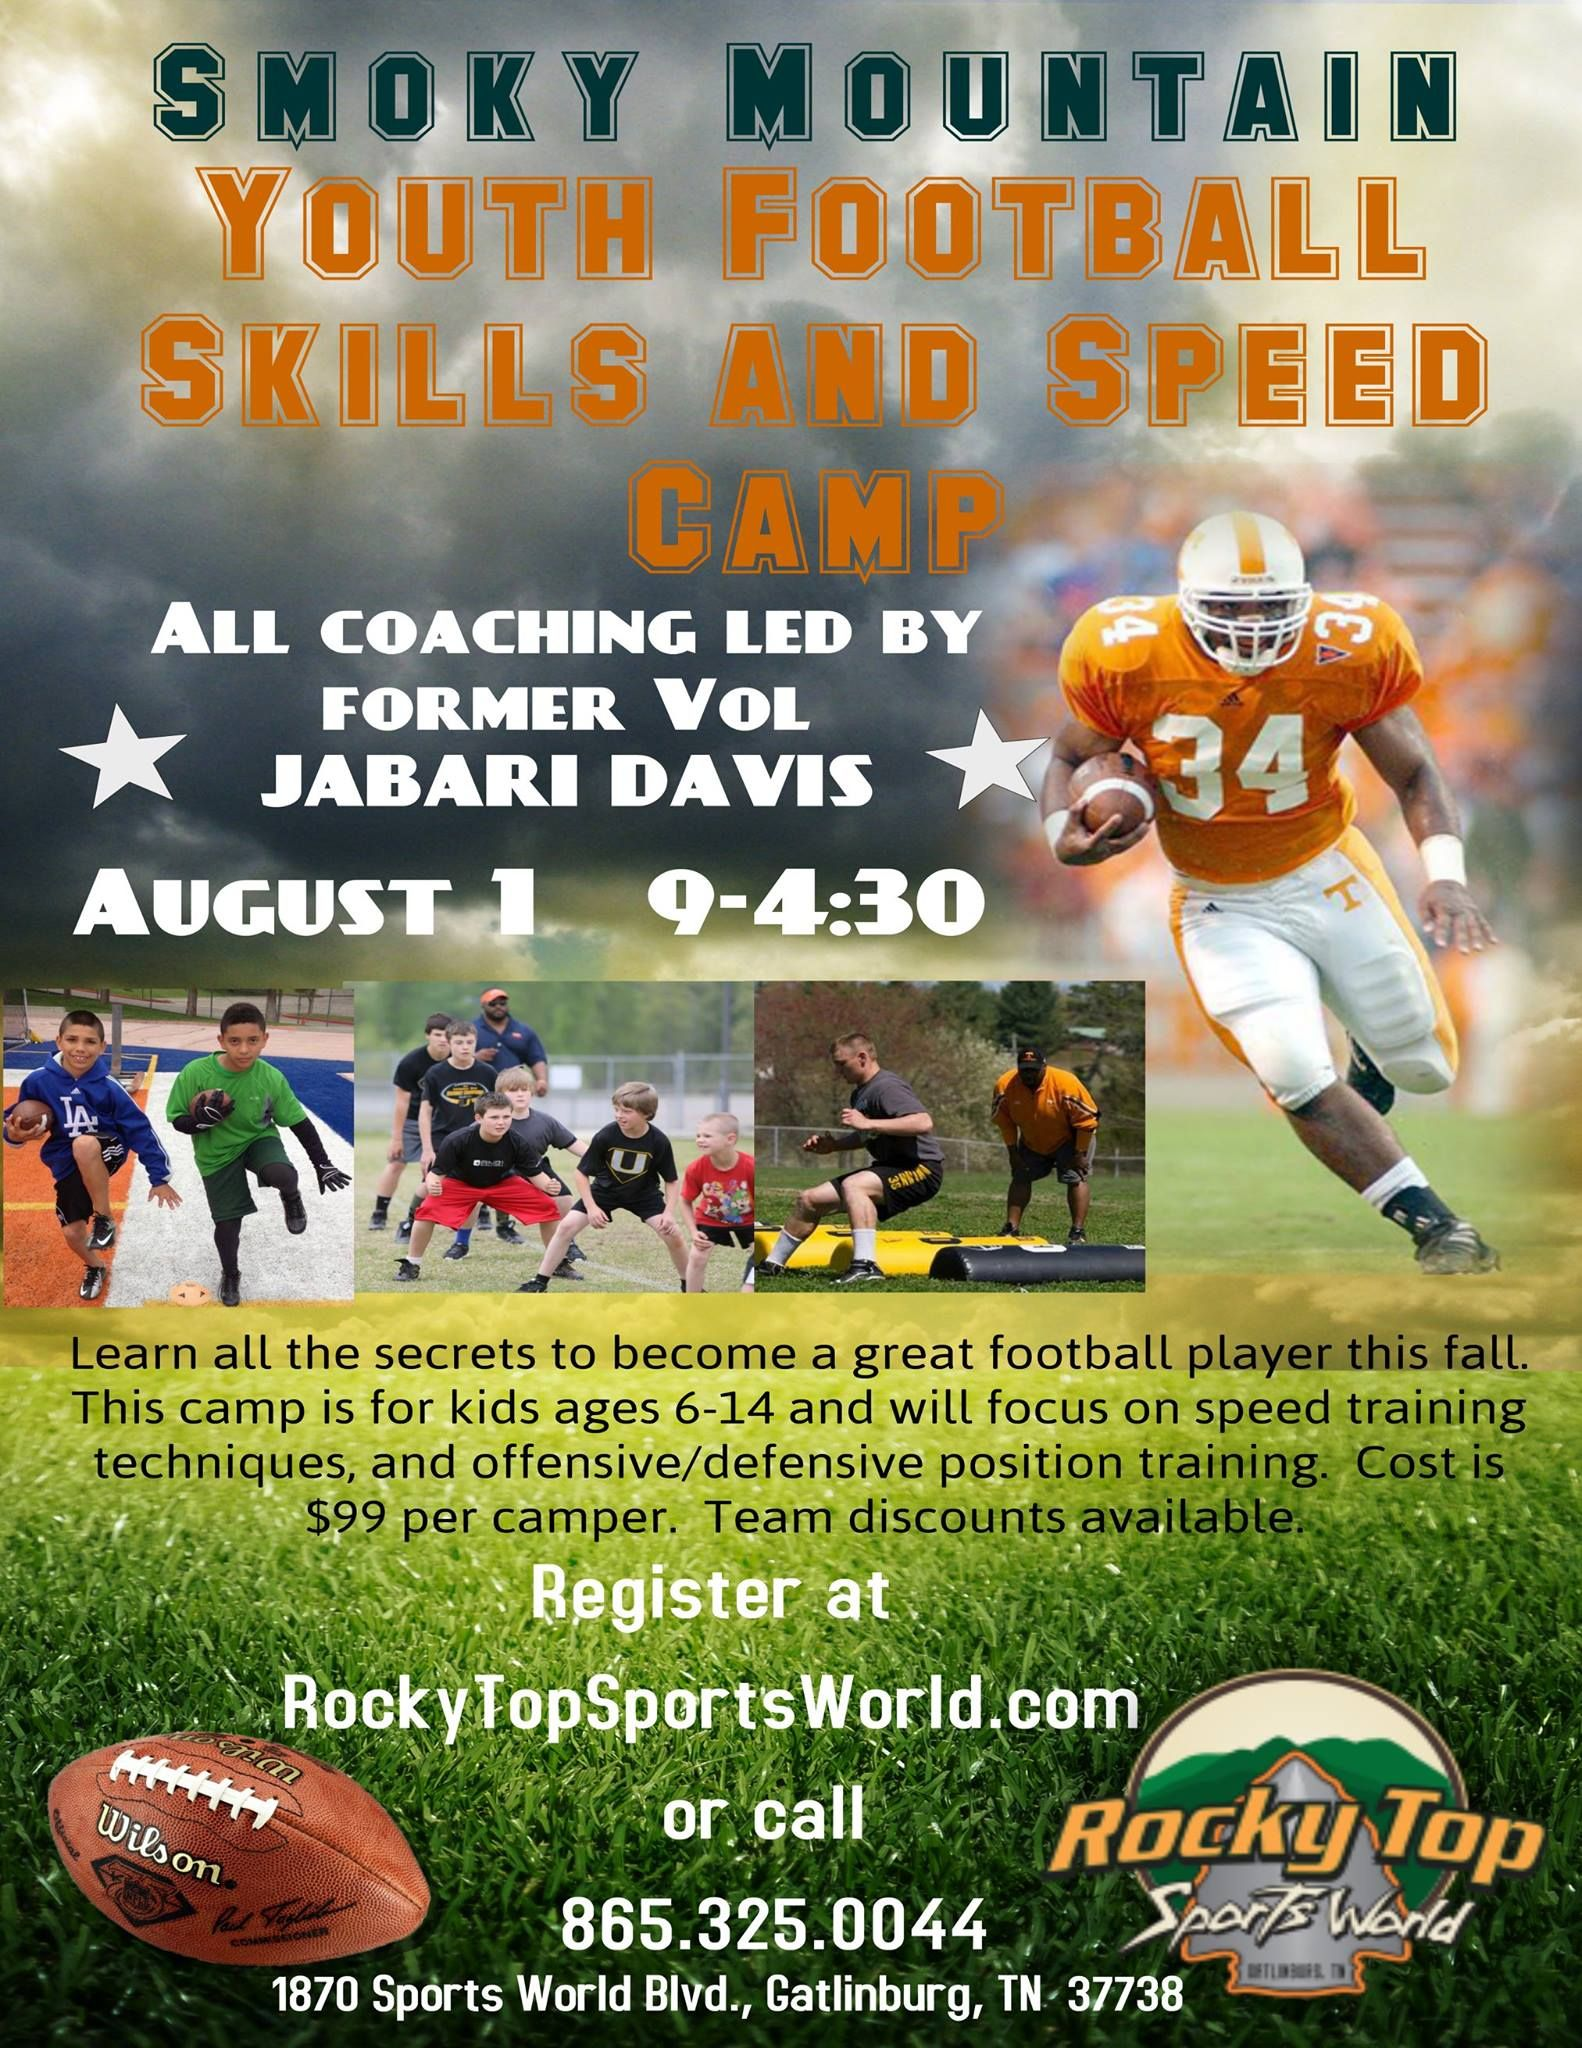 Smoky Mountain Youth Football Skills and Speed Camp